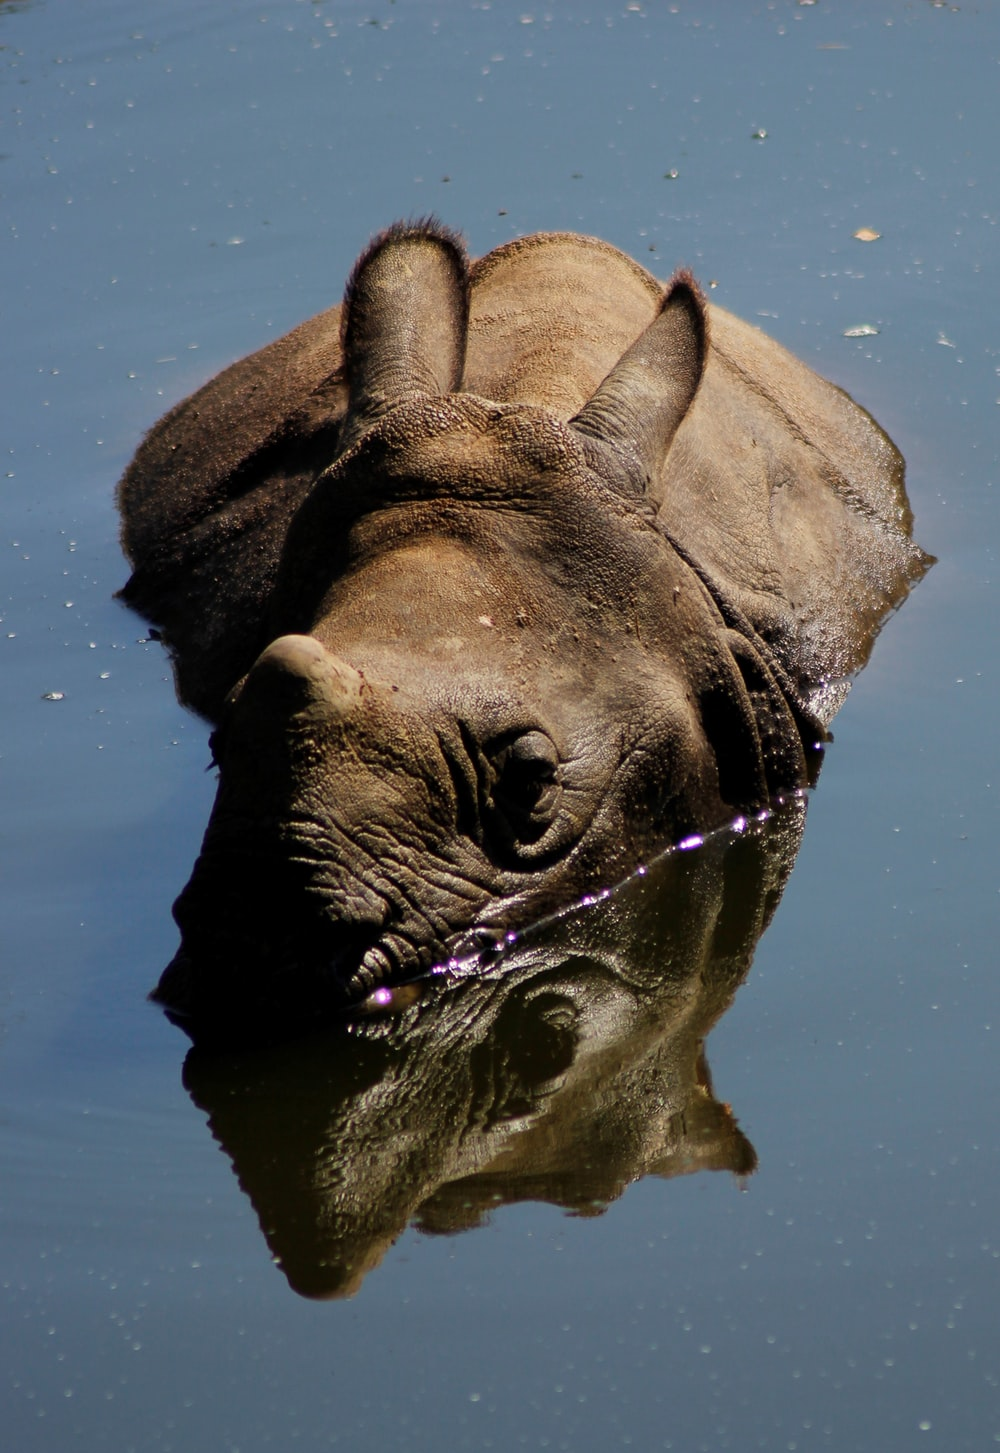 brown elephant on water during daytime